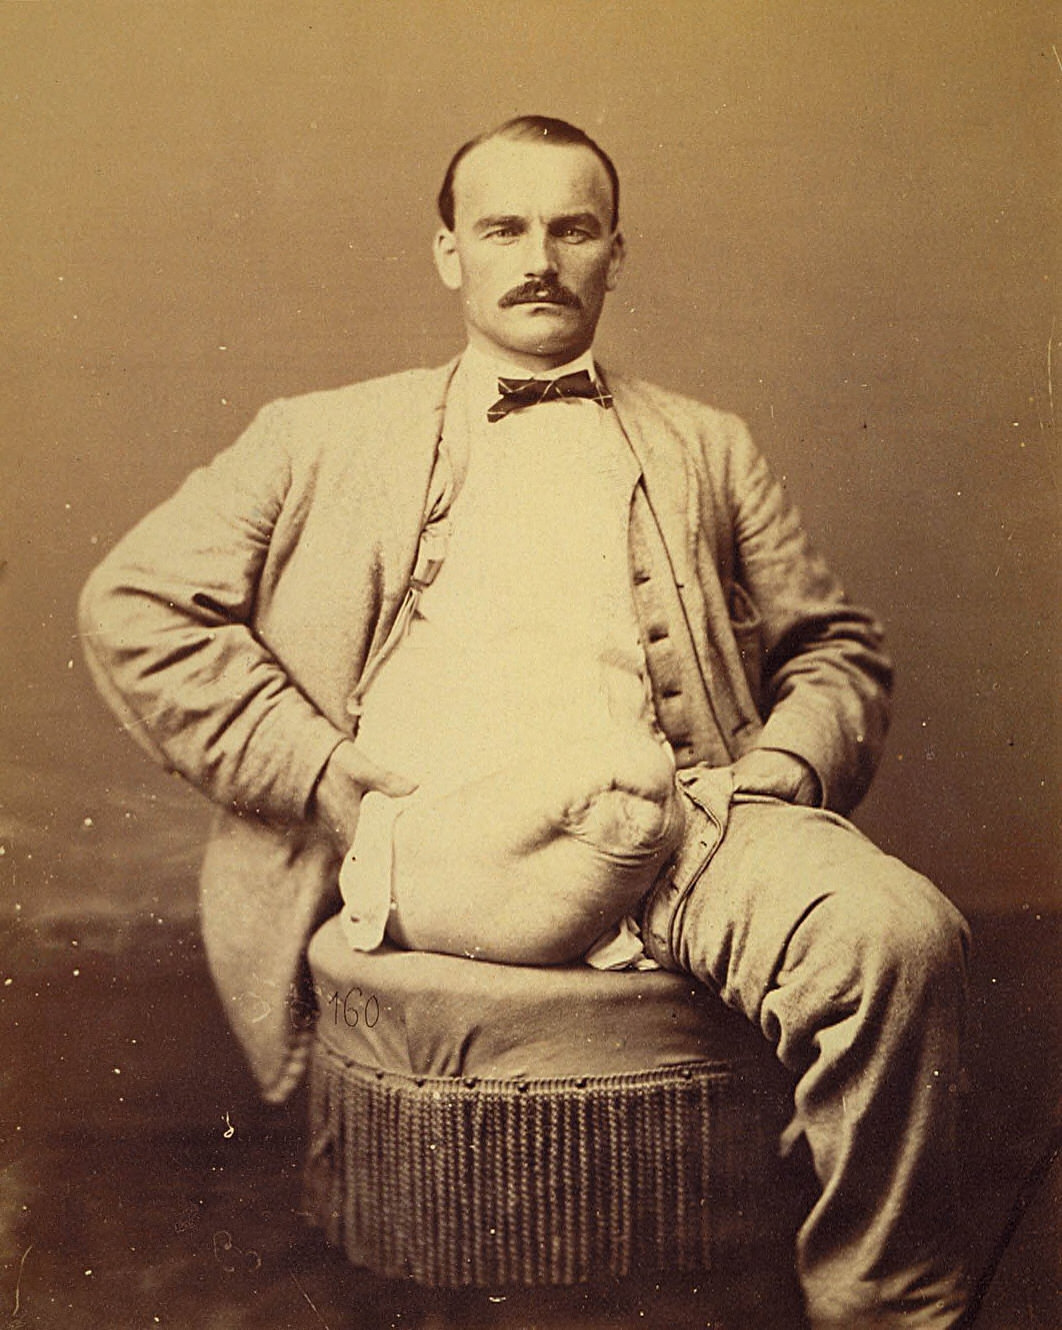 Private Charles Meyer, Amputation of the Right Thigh, from the Photographic Catalogue of the SurgicalSection